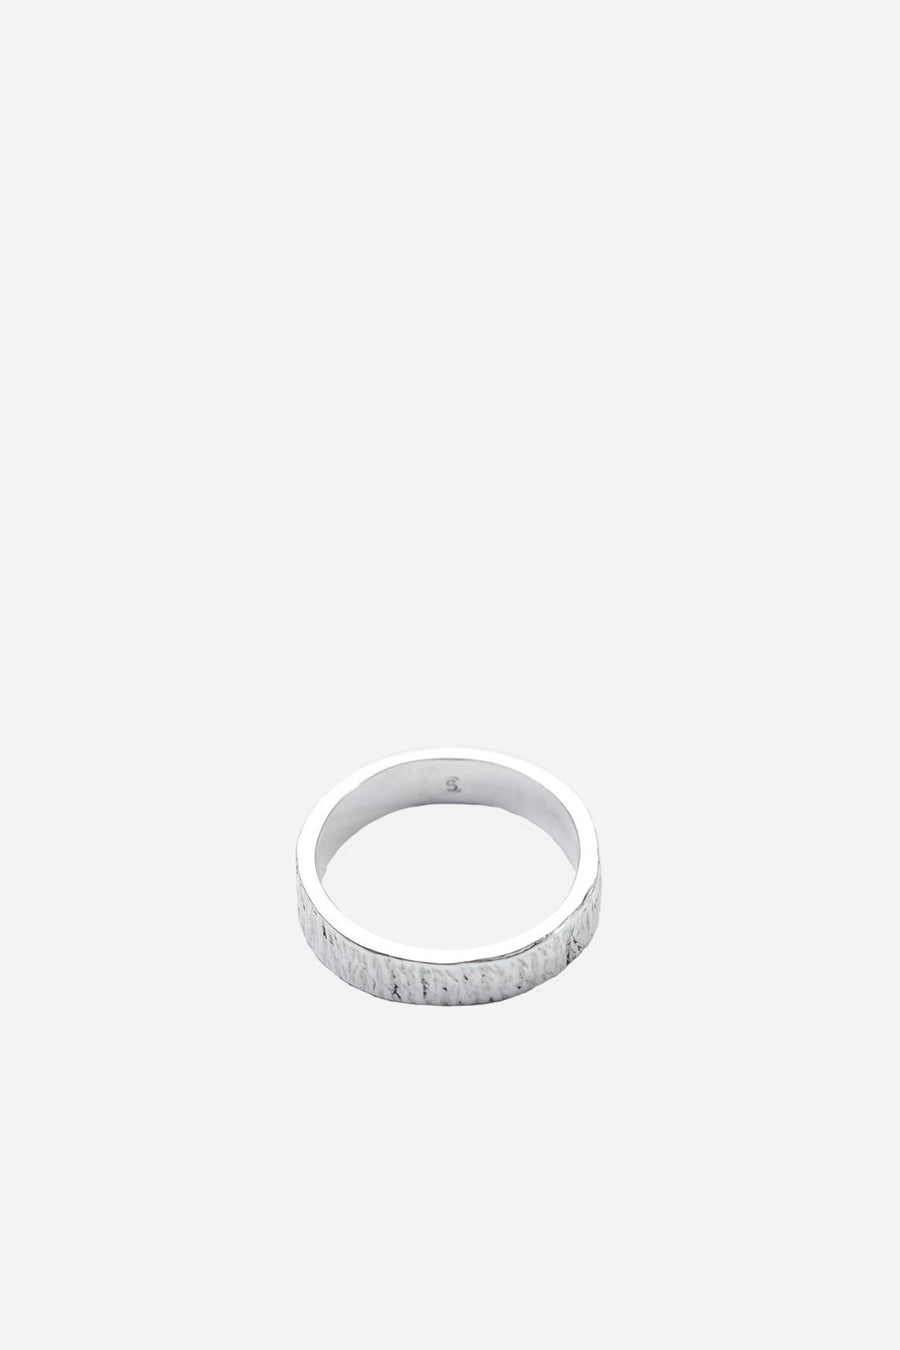 TYPE 005 Texture Ring